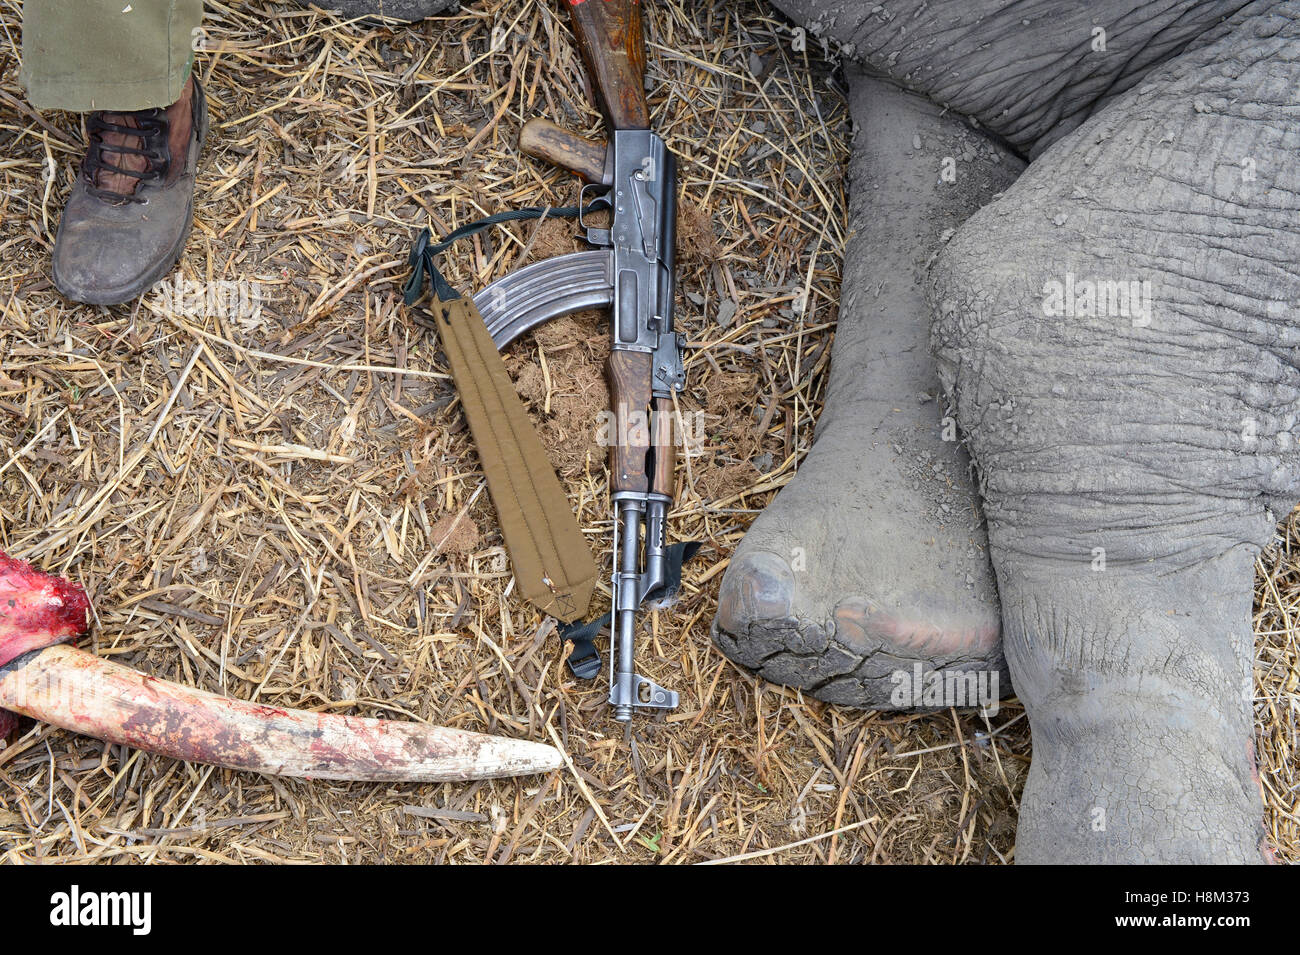 Still life showing the legs of a dead elephant an AK47  rifle and a tusk removed from the dead elephant - Stock Image